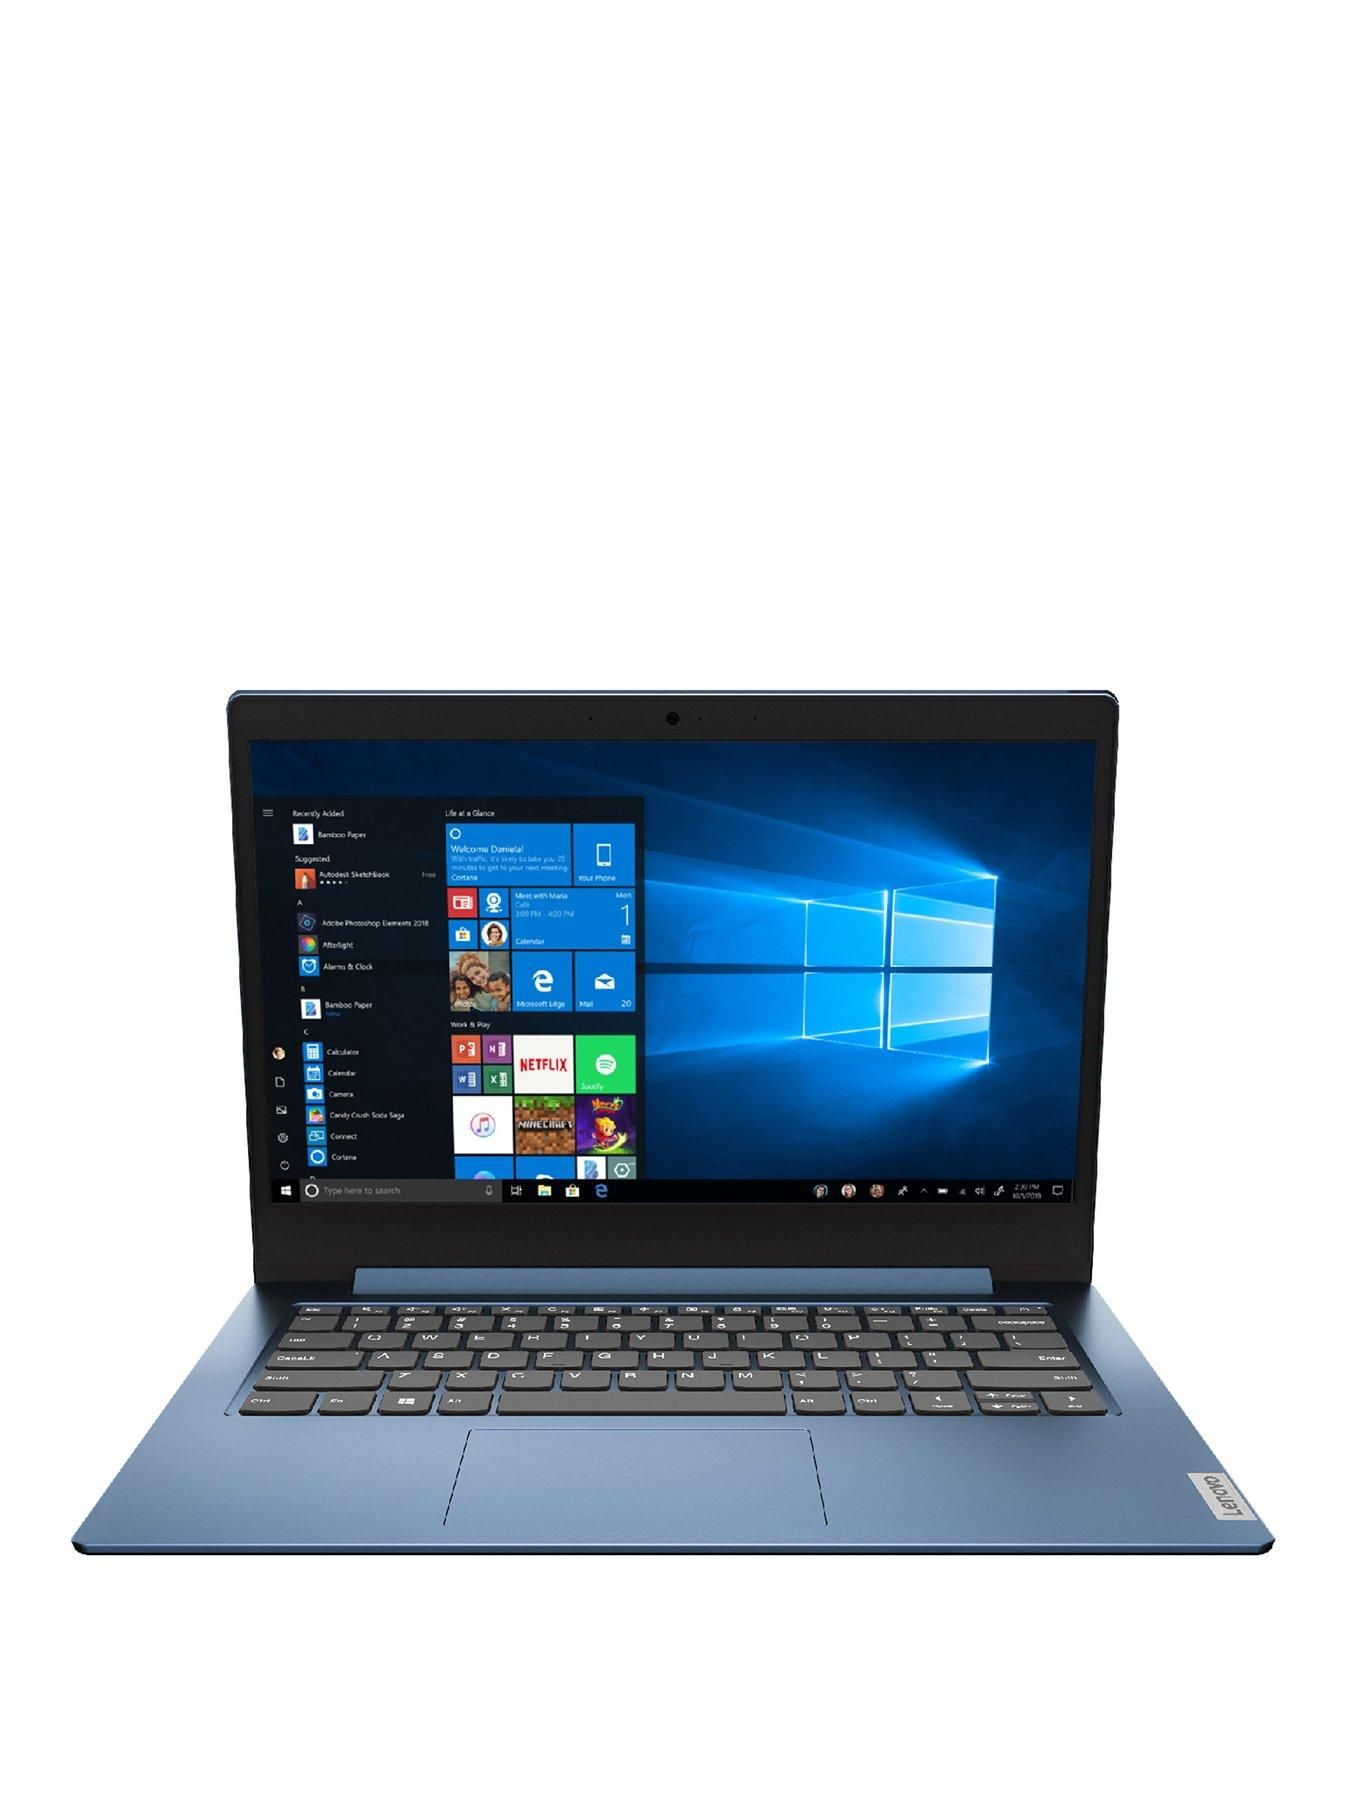 Ideapad Slim 1 Amd A4 64gb Emmc Ssd 14